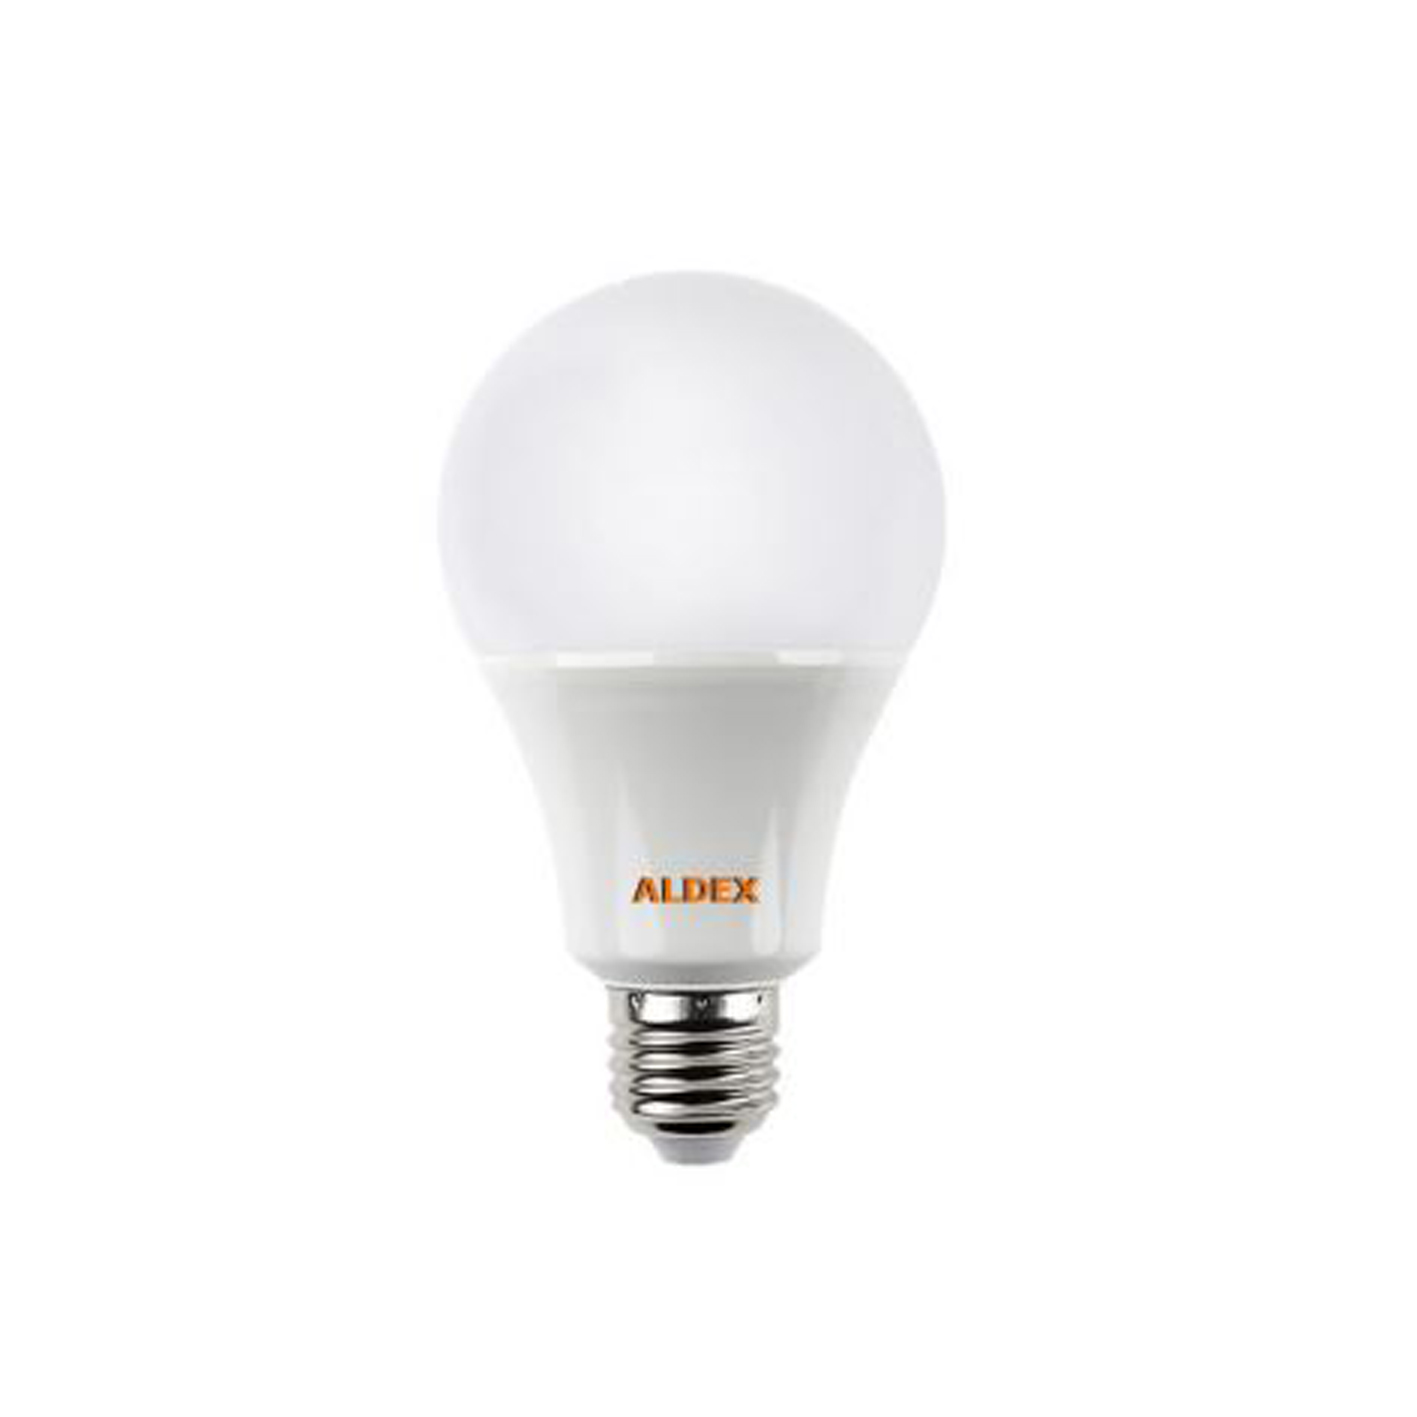 Aldex 5W 6500K E27 Led Ampul